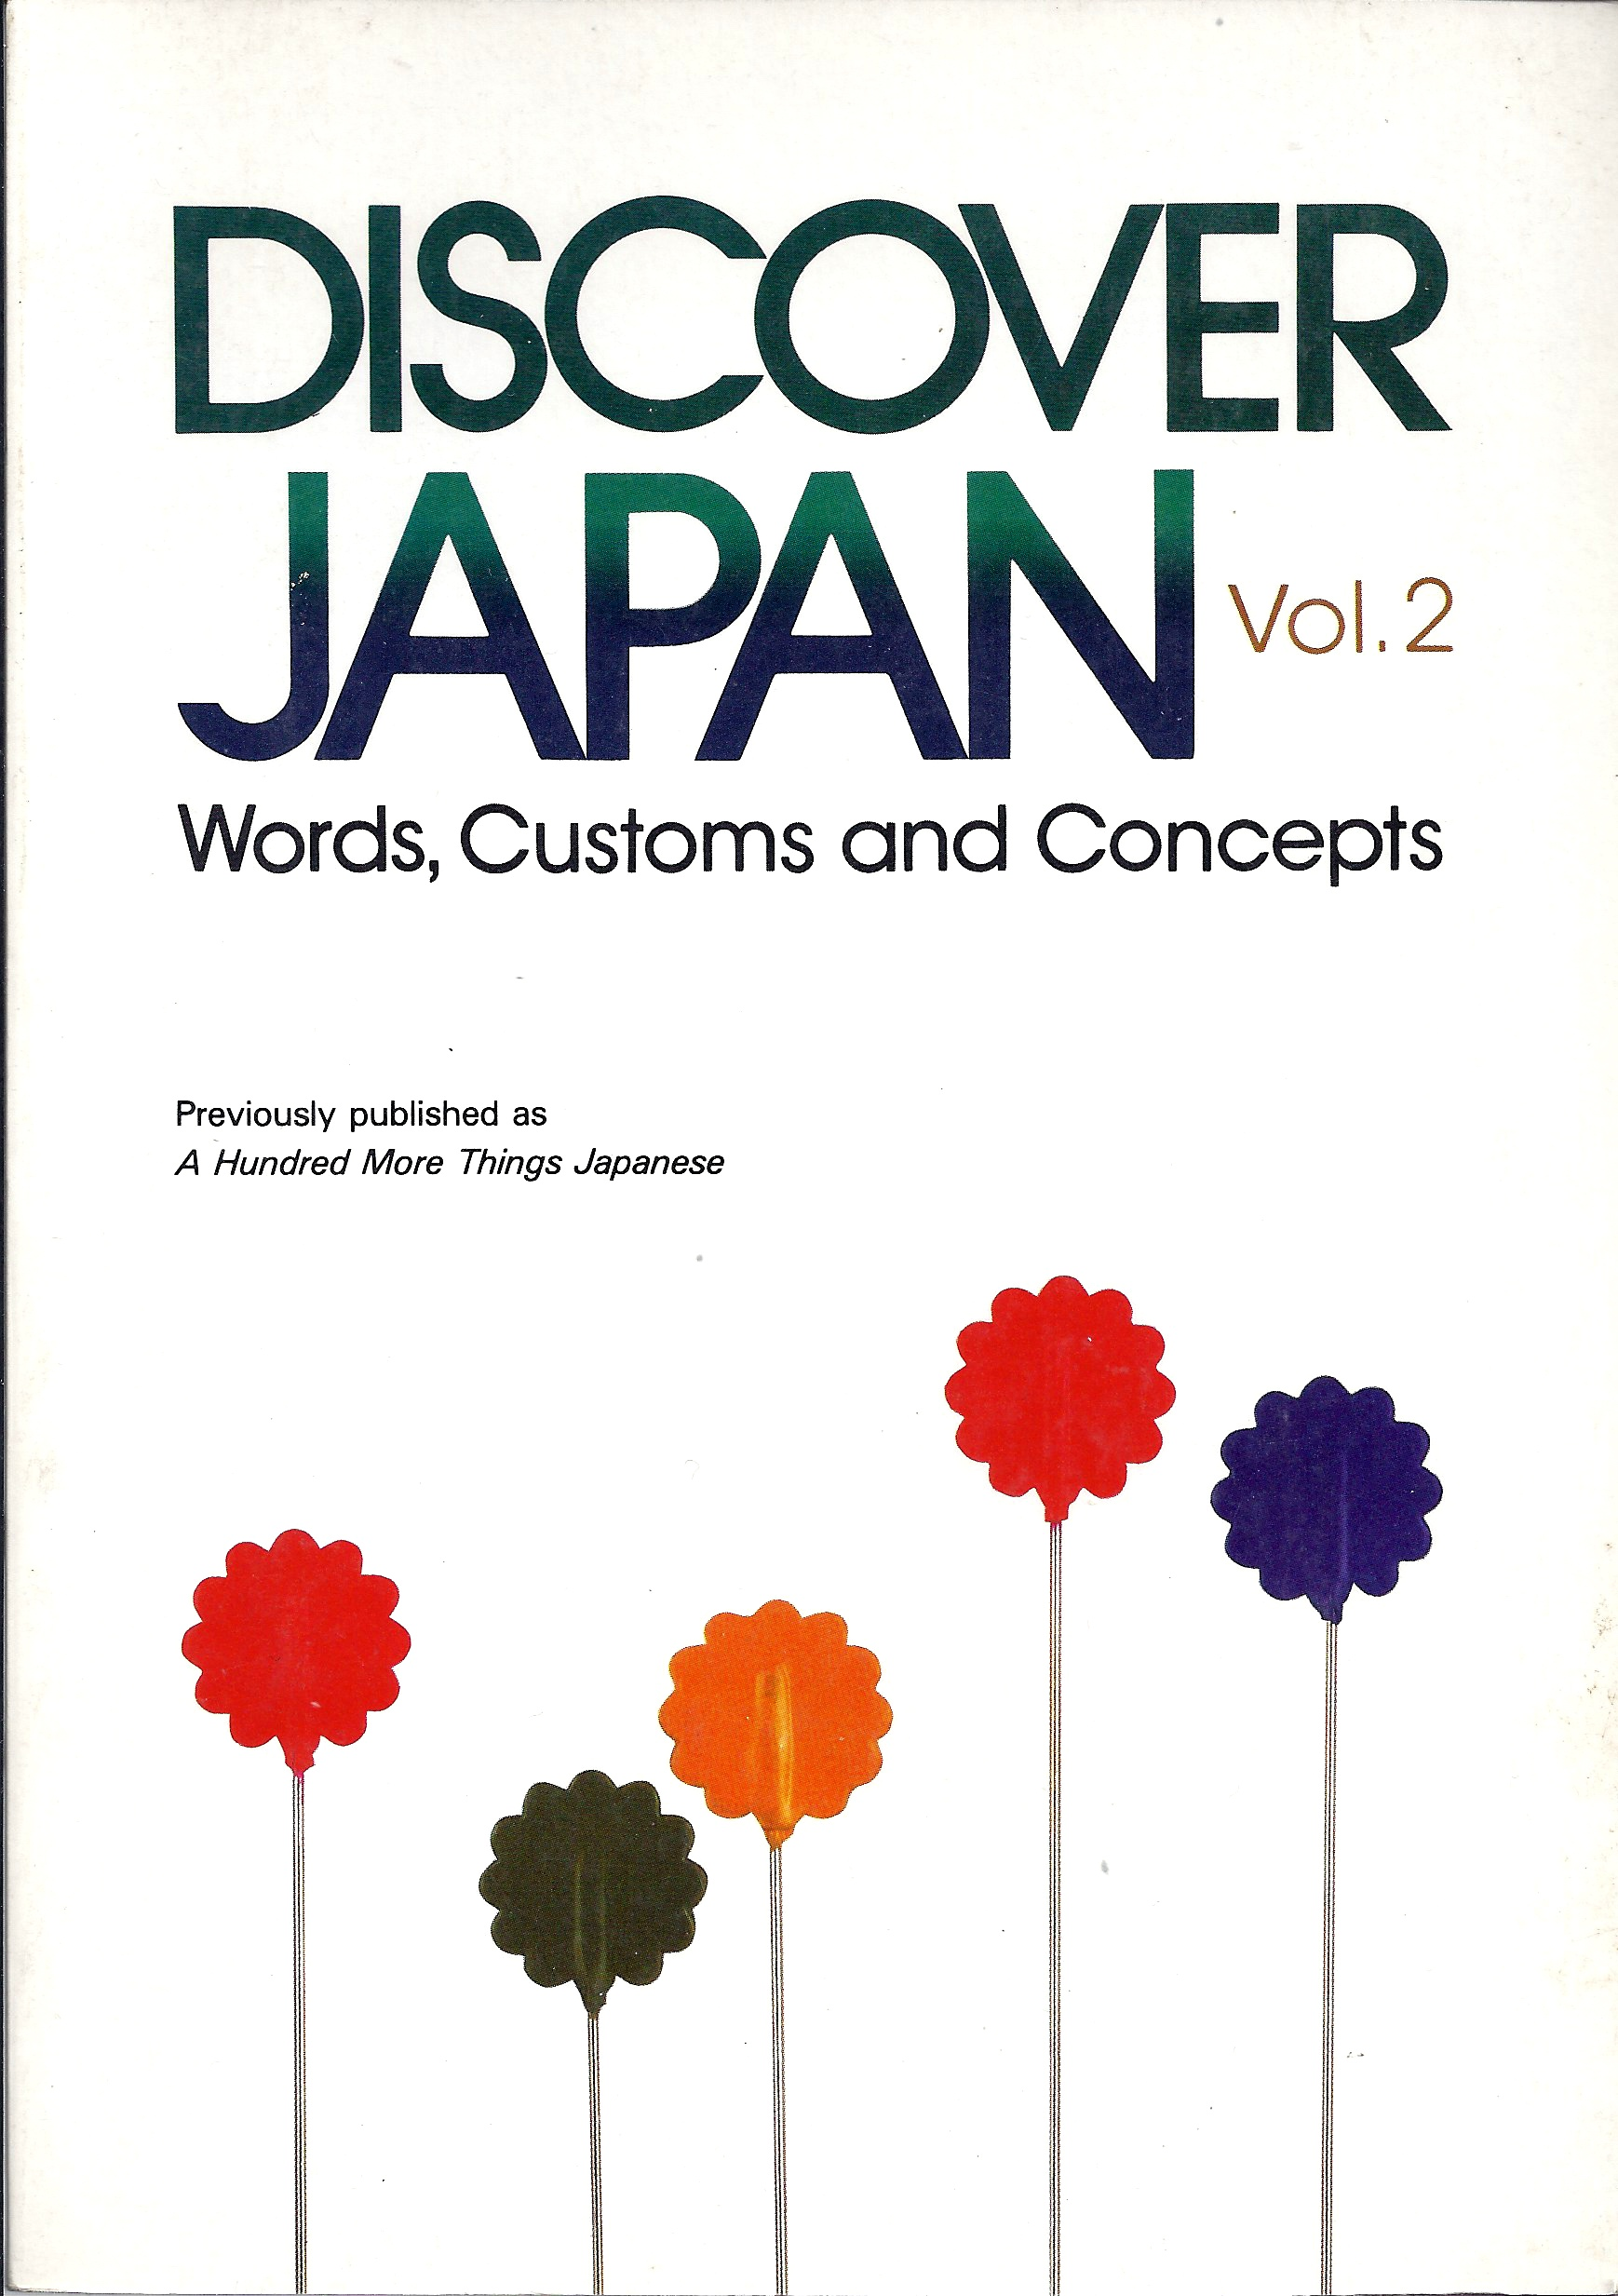 Discover Japan Vol. 2 Words, Customs and Concepts